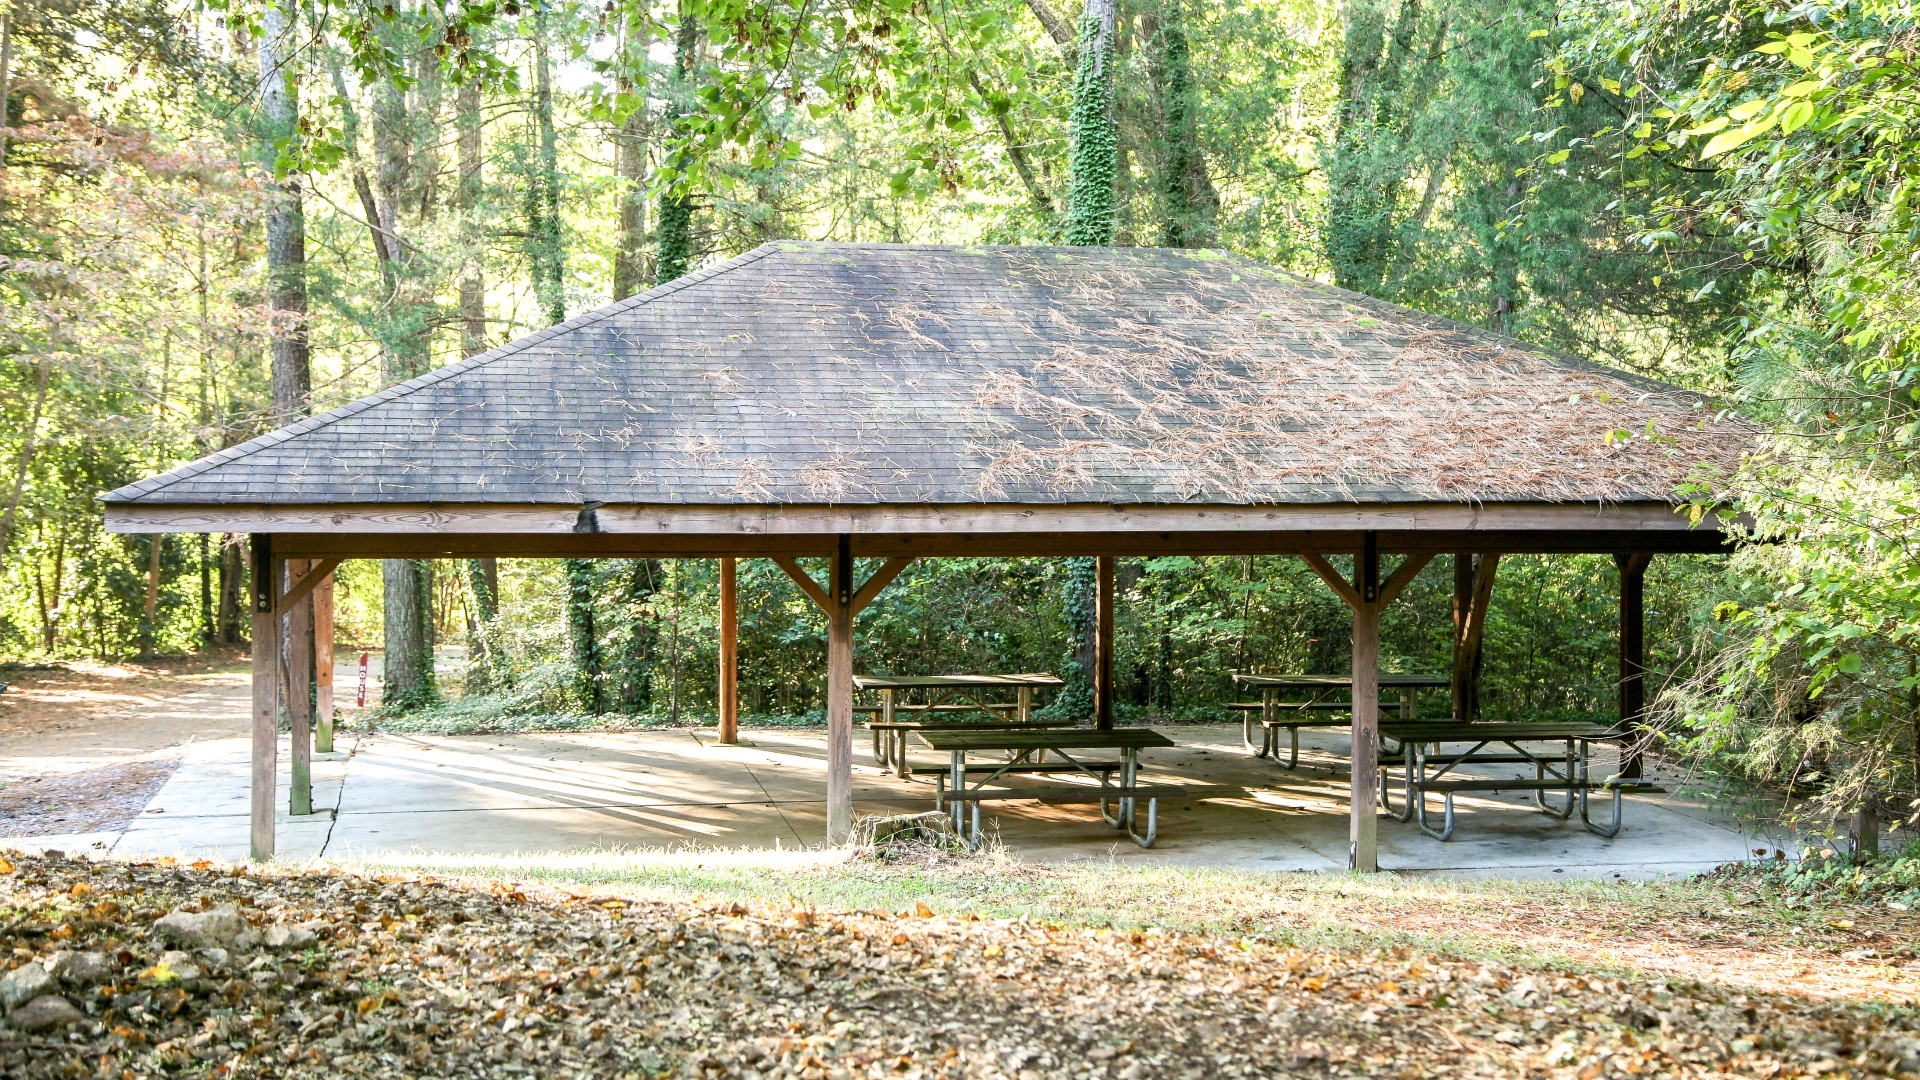 Outdoor picnic shelter at Glen Eden Pilot Park with five picnic tables